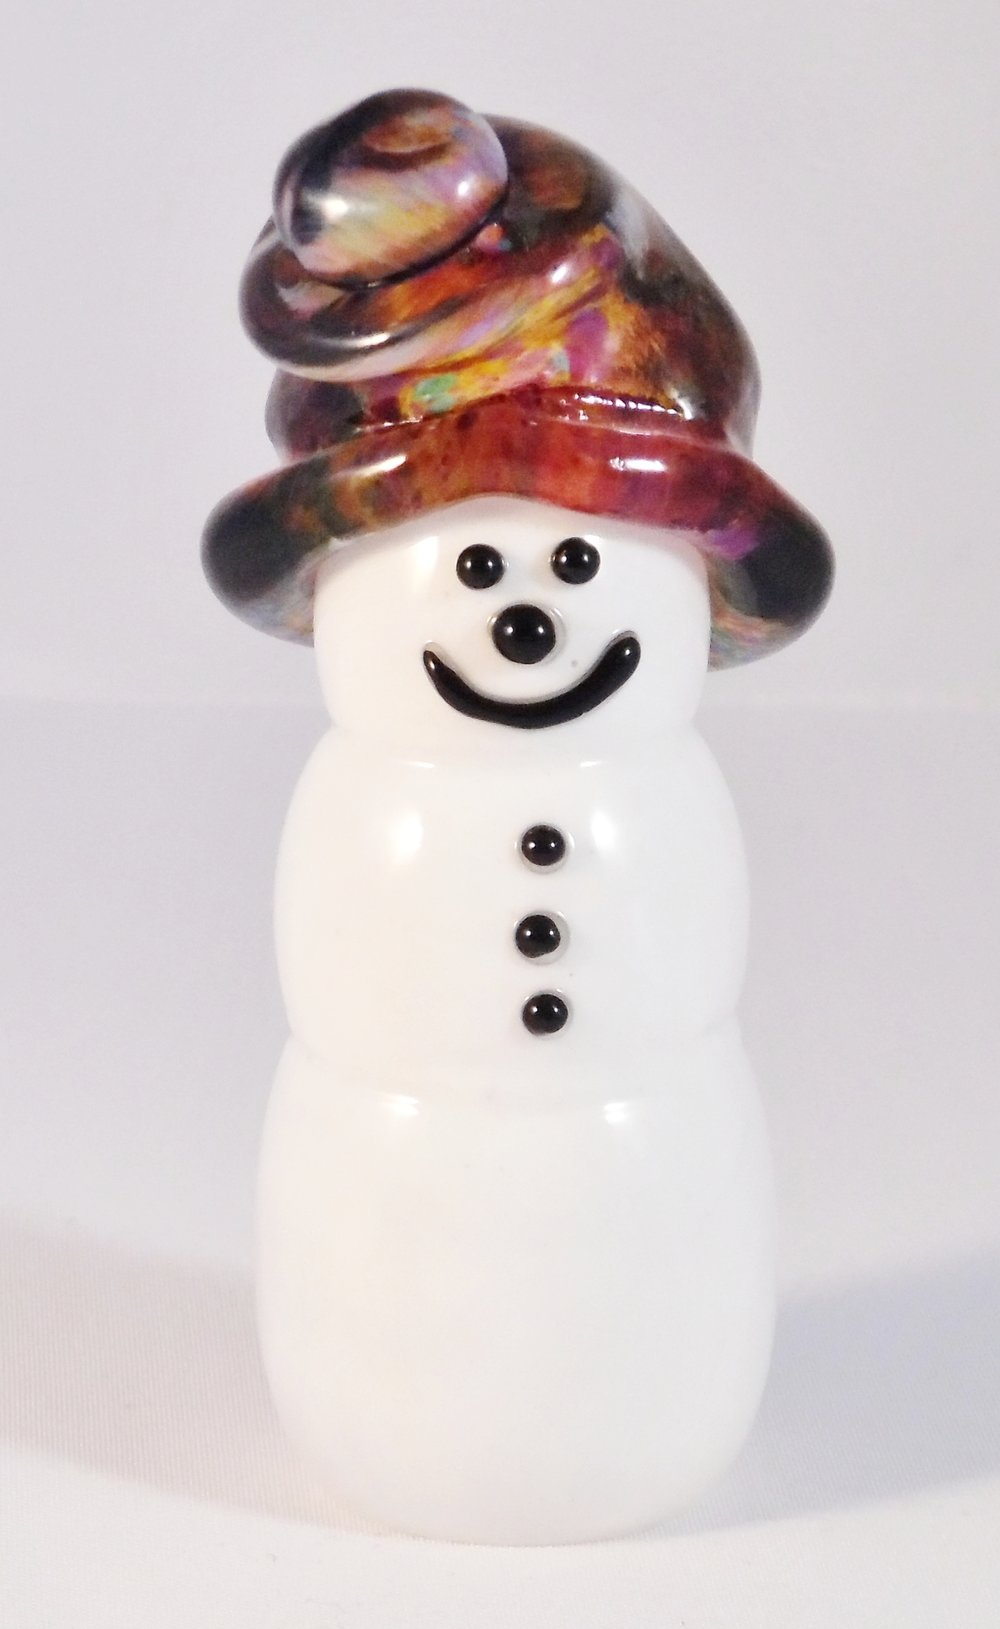 Snowman by Nicole Tremblay